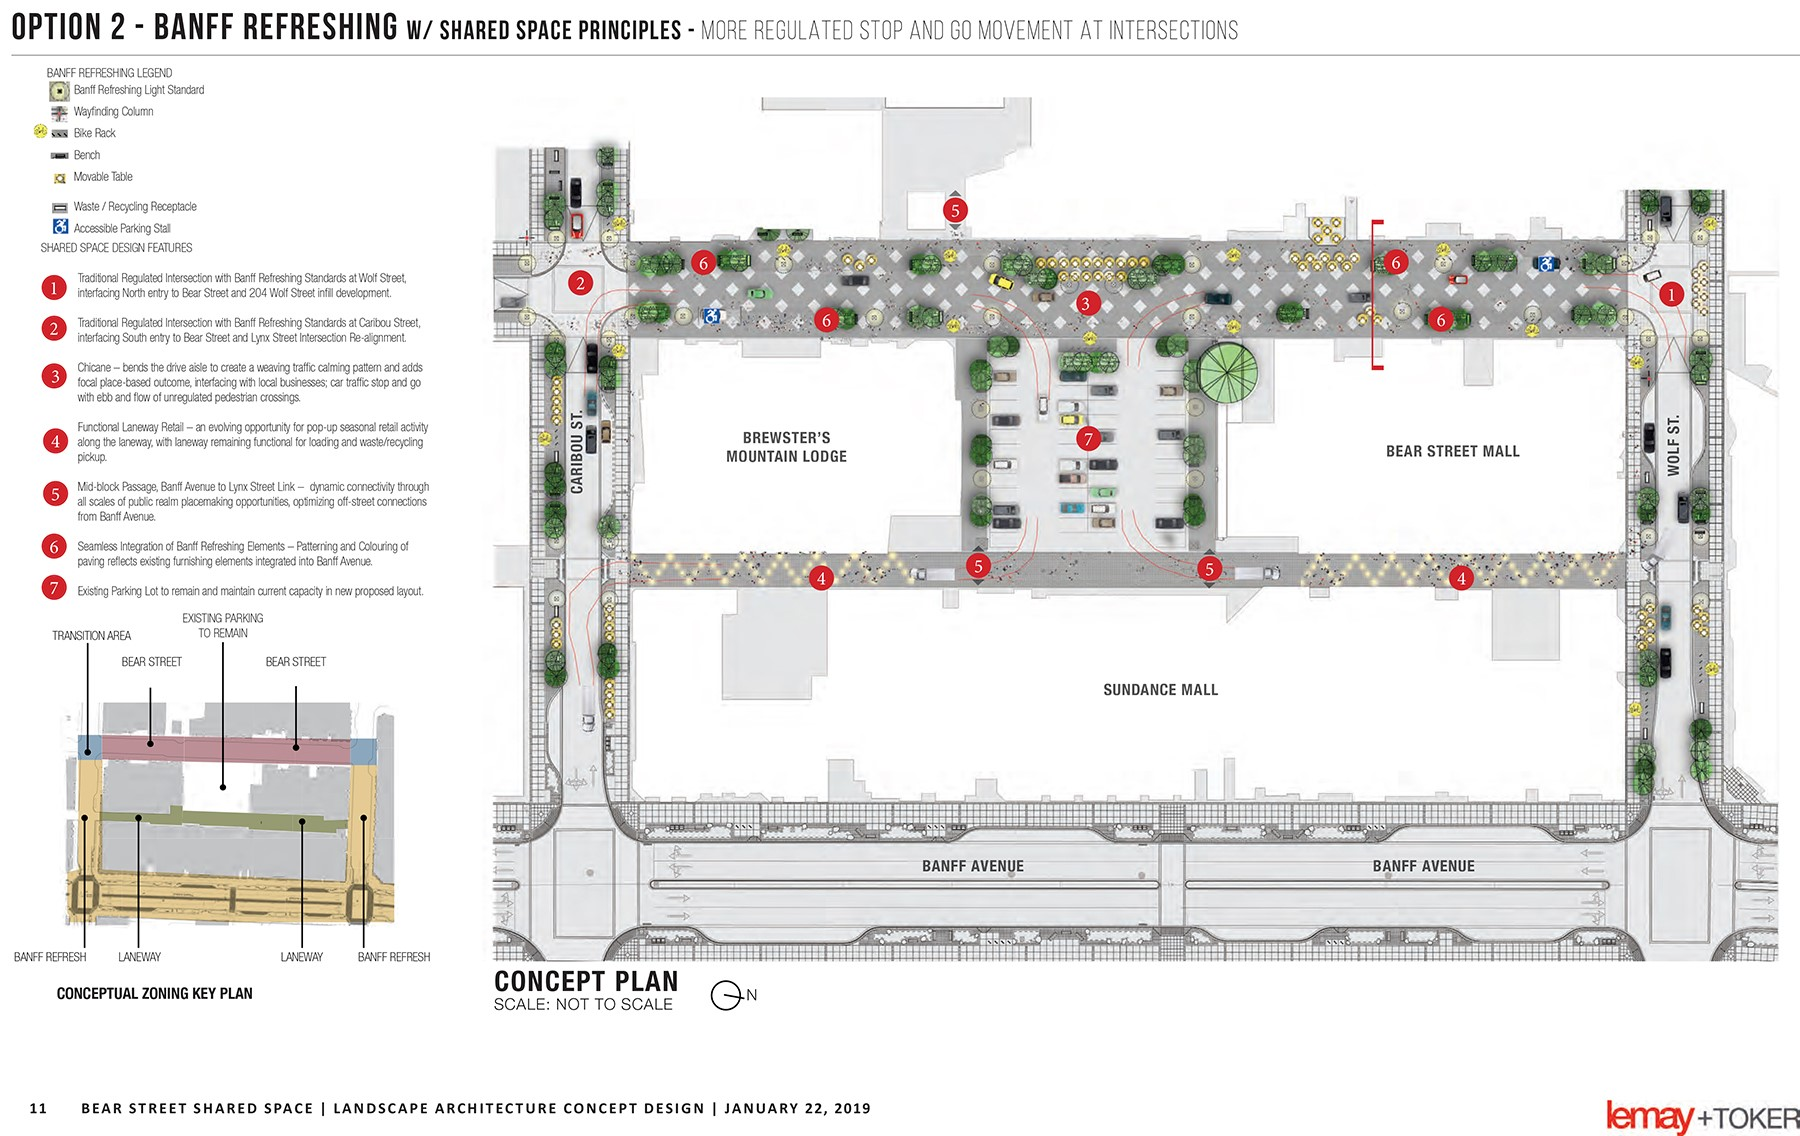 Option 2 Banff Refreshing with Shared Space Principles (PDF) Opens in new window